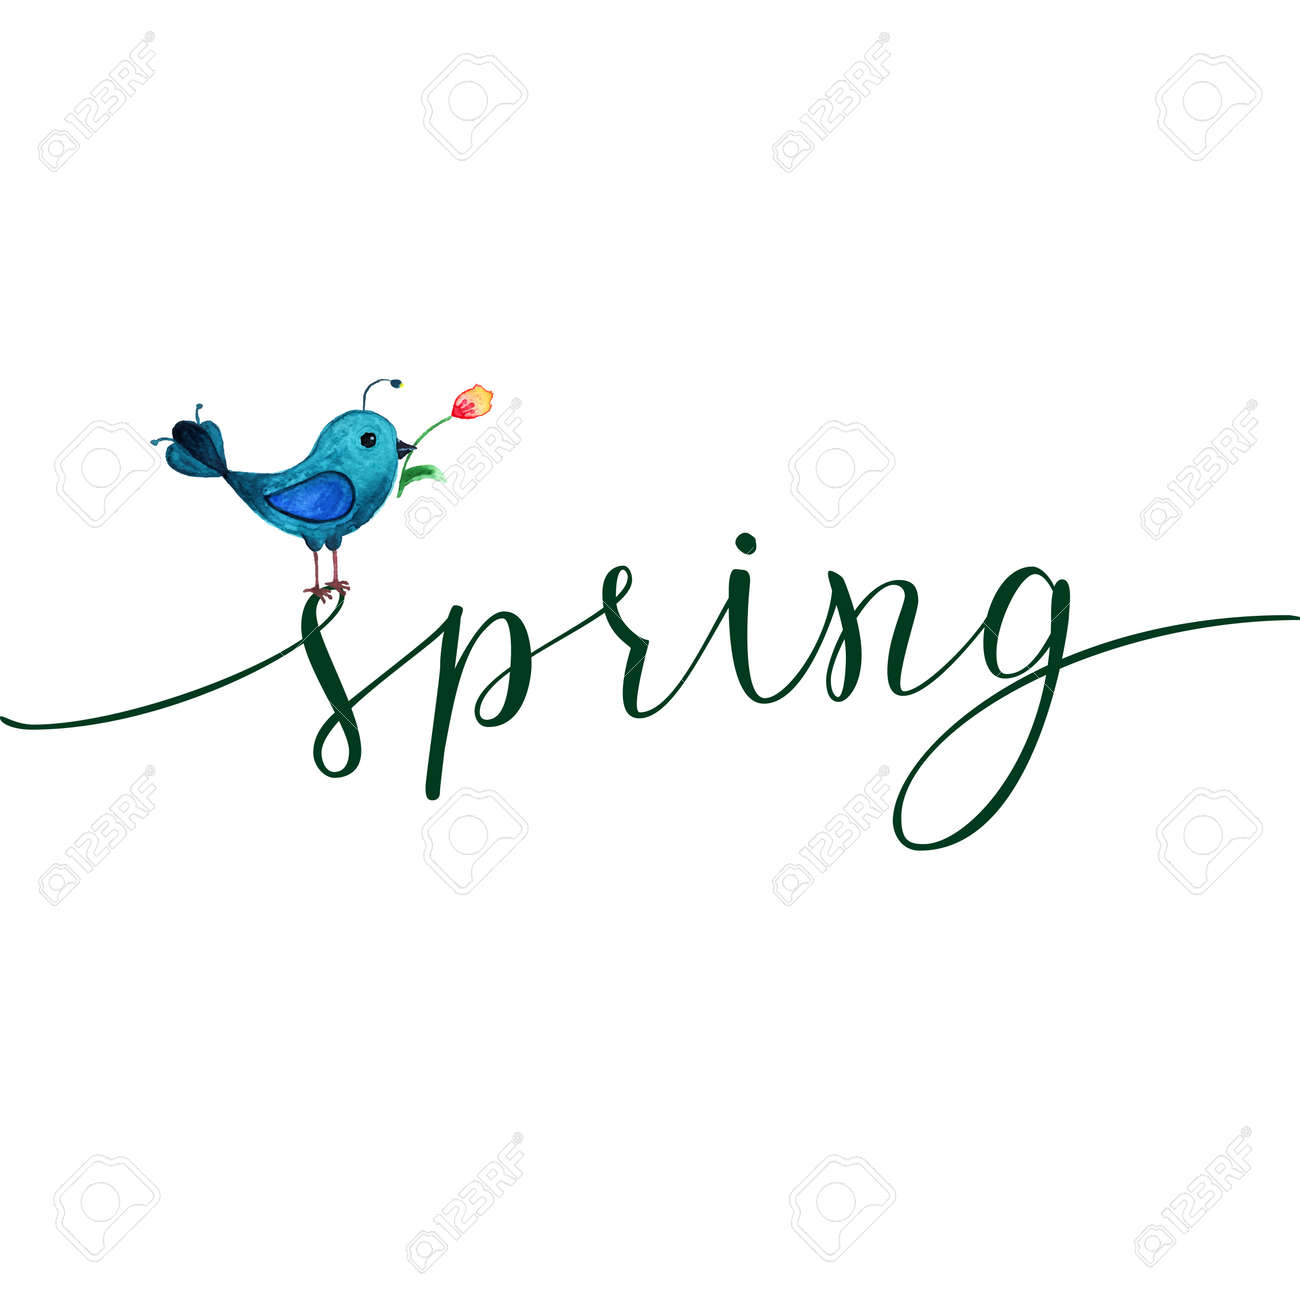 Spring Greeting Card With Blue Bird And Original Text Spring